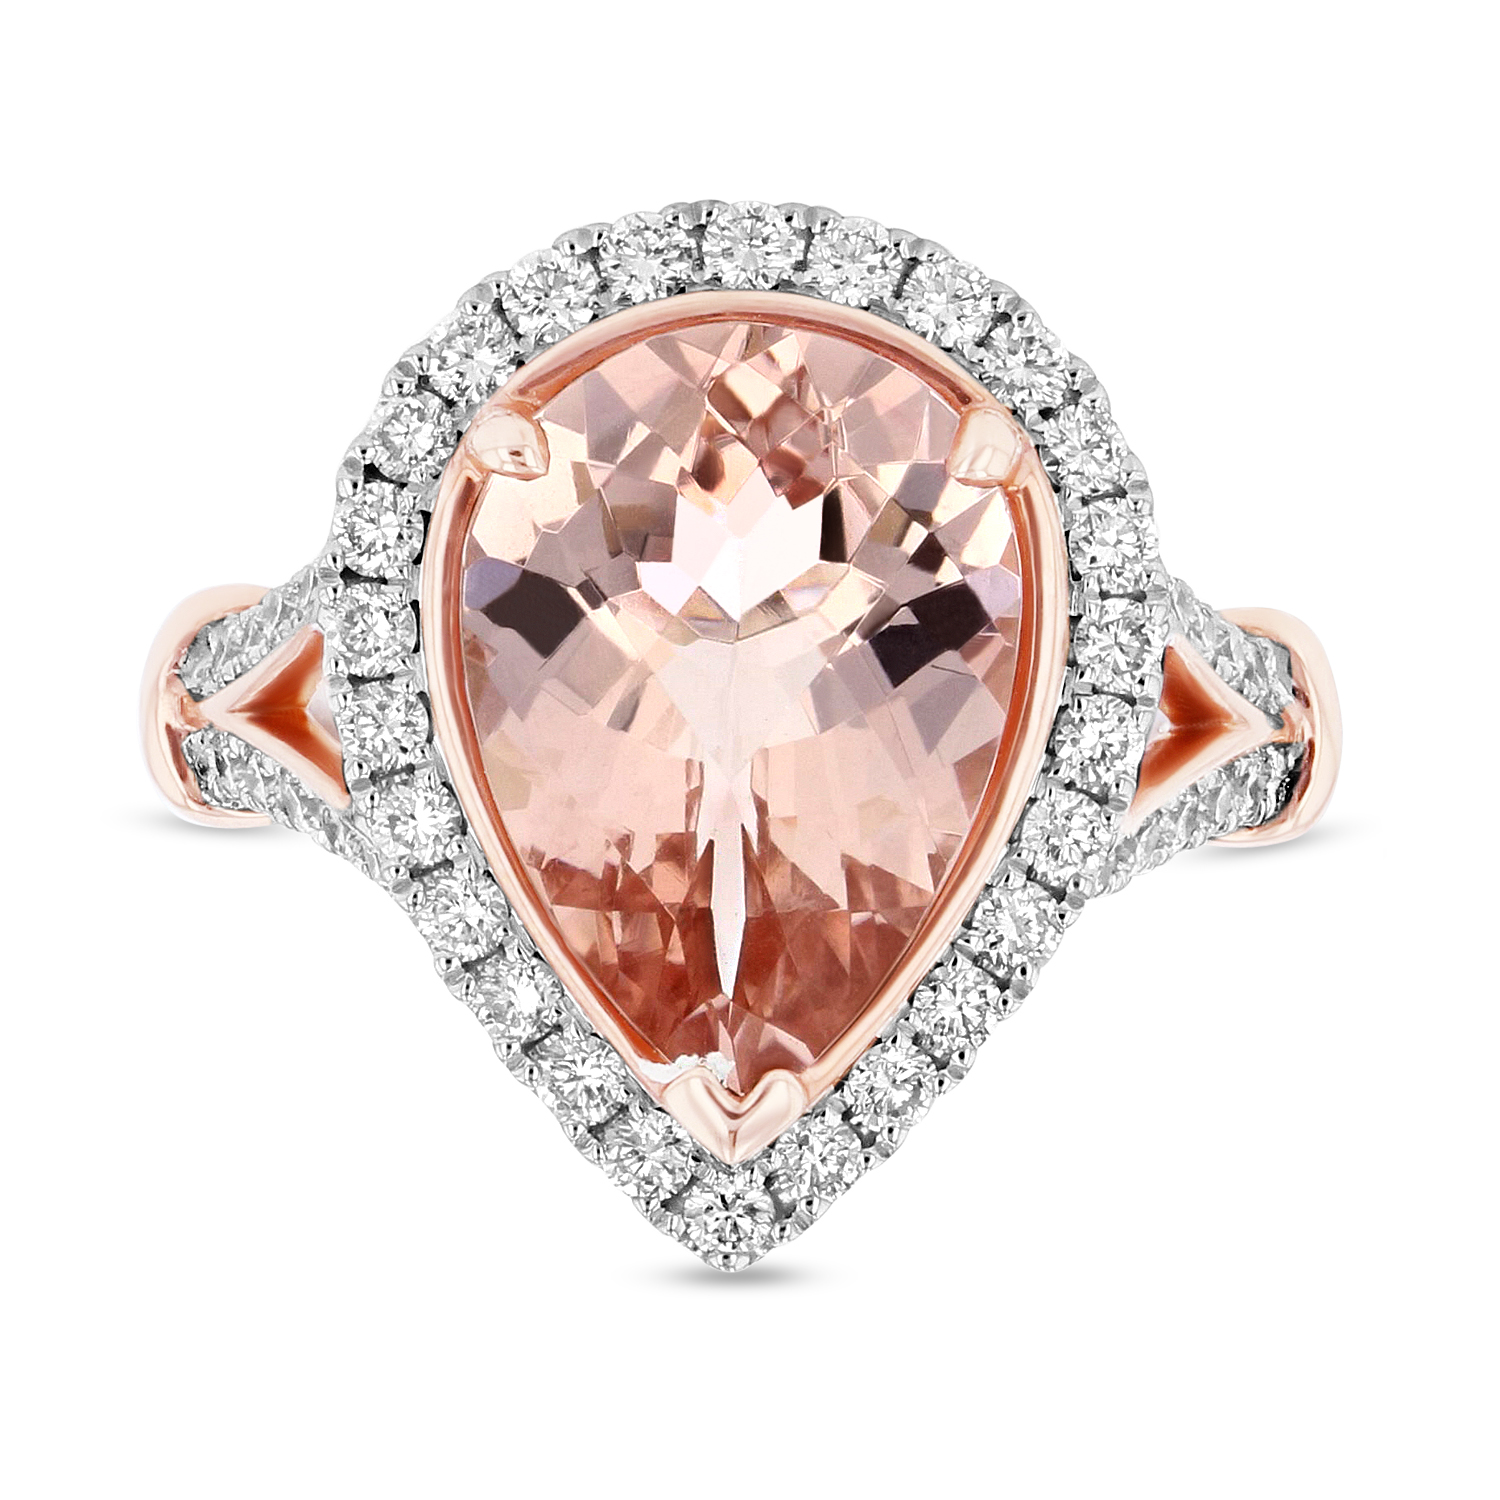 View Diamond and 4.2ct Pear Shaped Morganite Ring in 14k Two Tone Gold